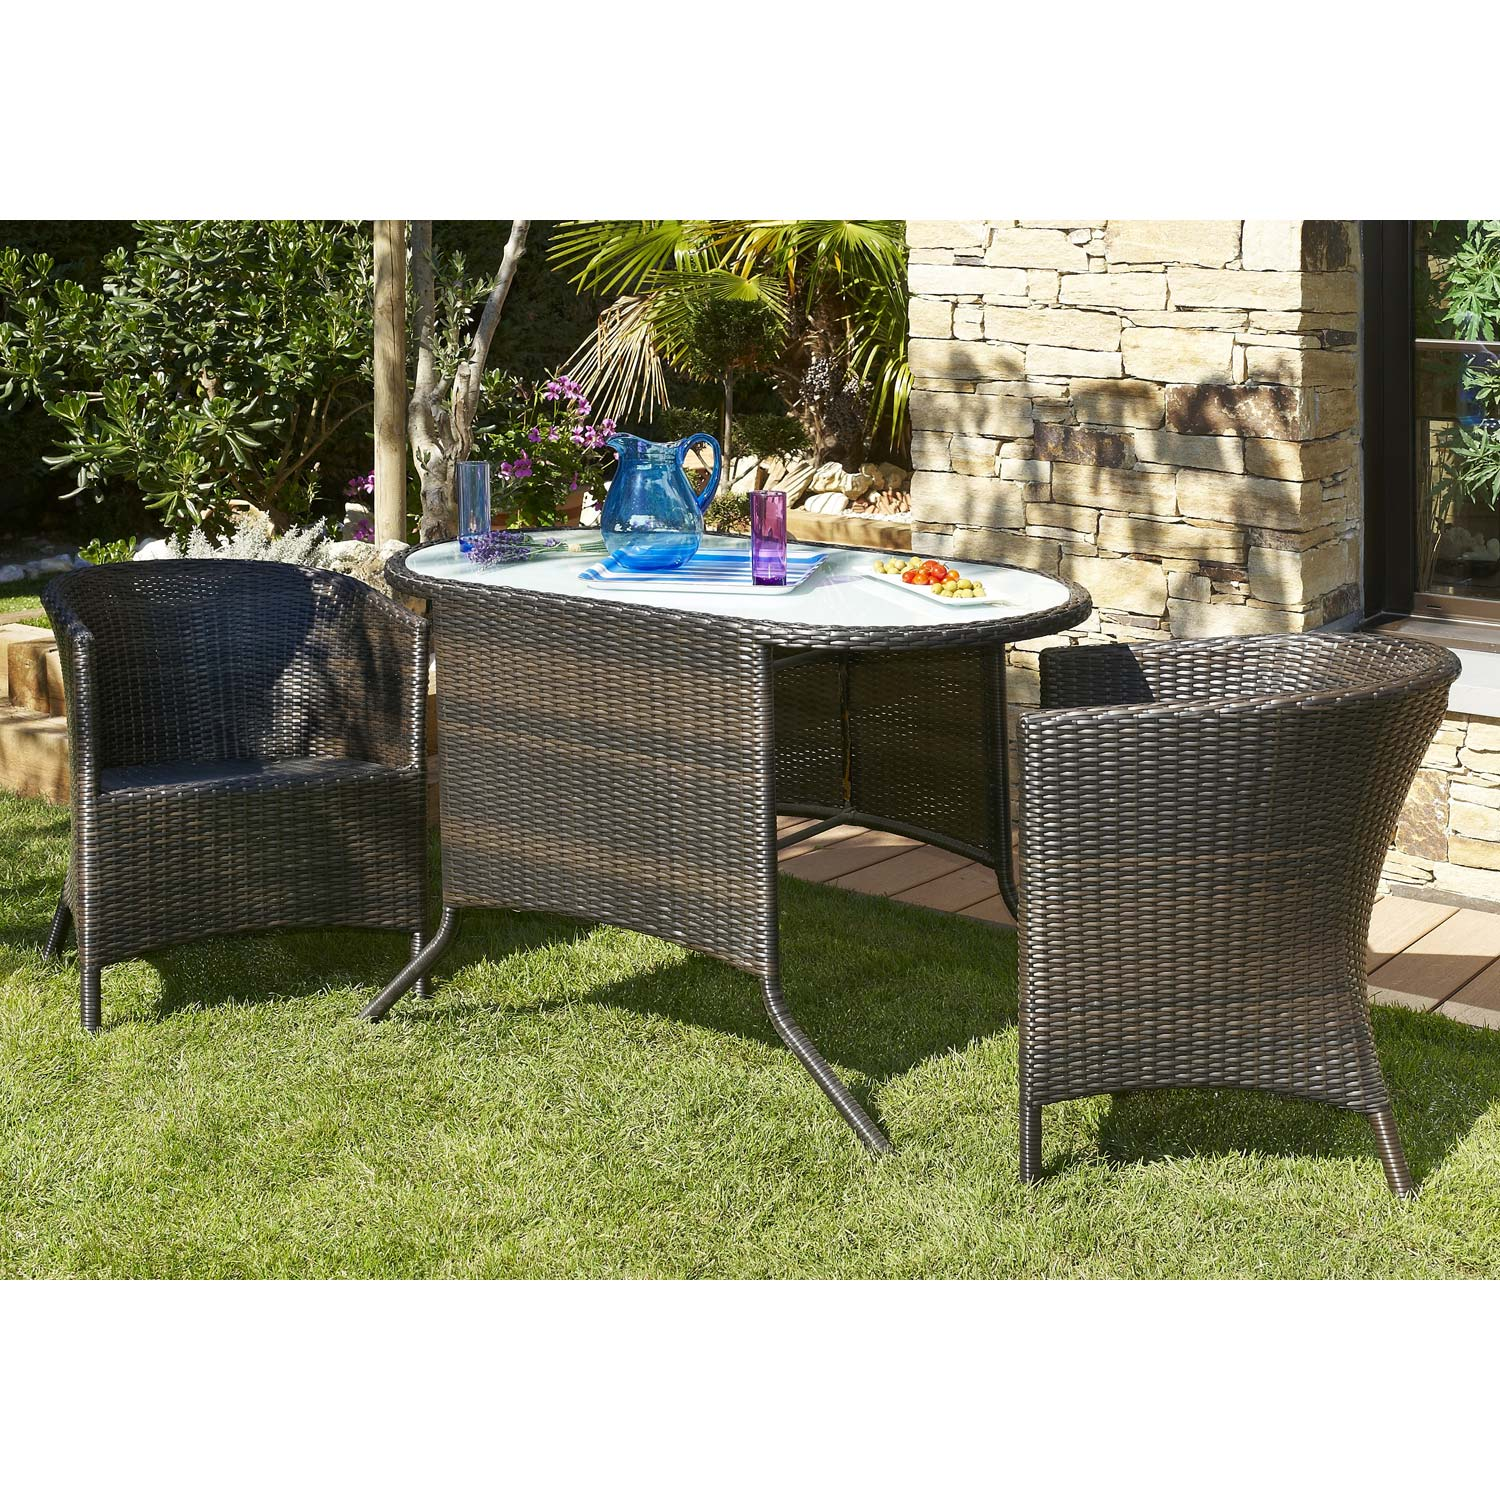 Salon de jardin duo r sine tress e marron 1 table 2 fauteuils leroy merlin - Leroy merlin salon jardin resine toulon ...